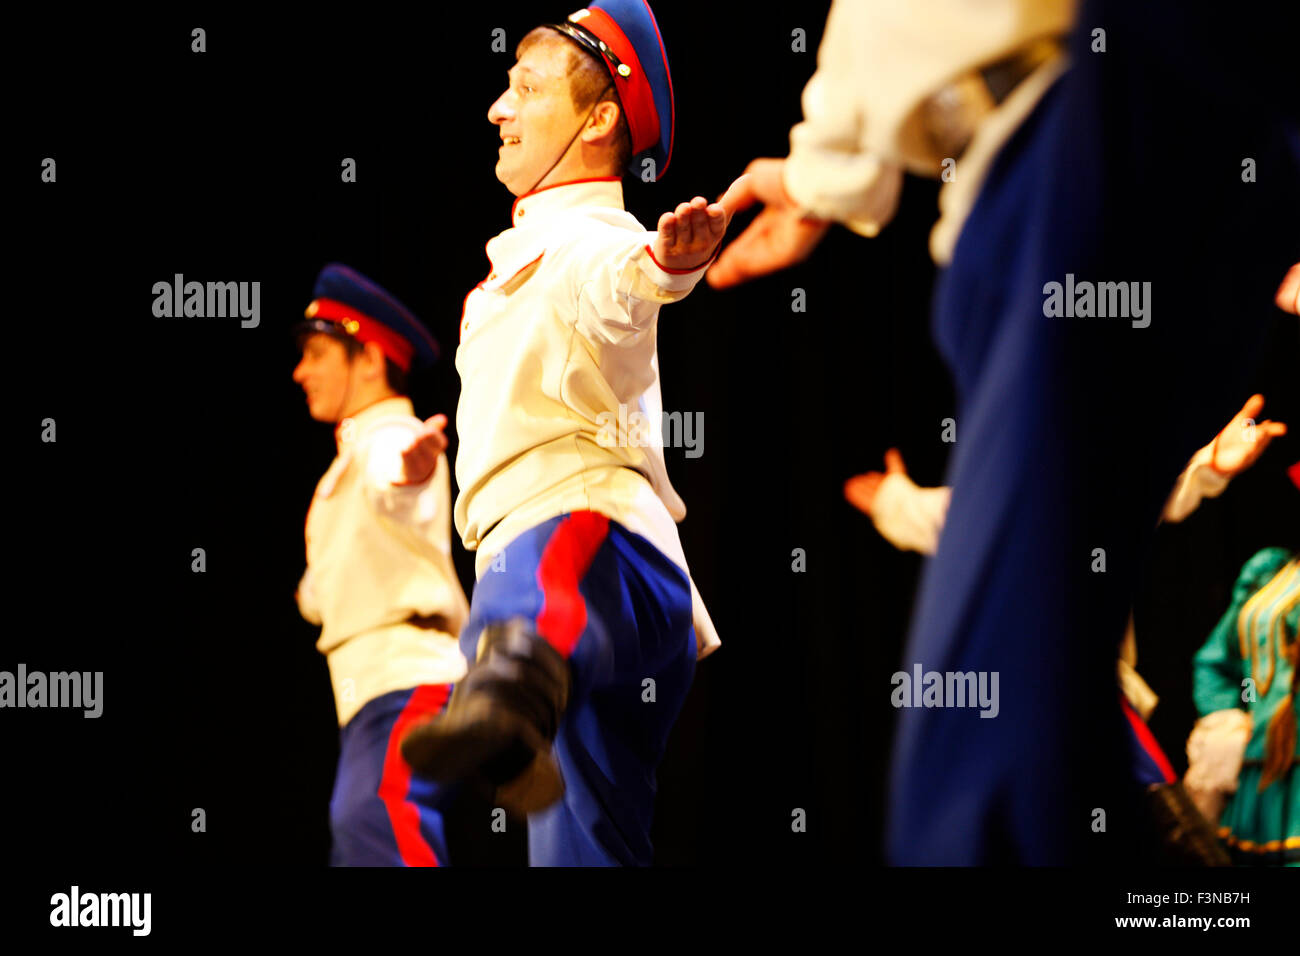 Russian Cossack folk tradition dancers performing live on stage during an entertainment evening show in Myrina city, - Stock Image